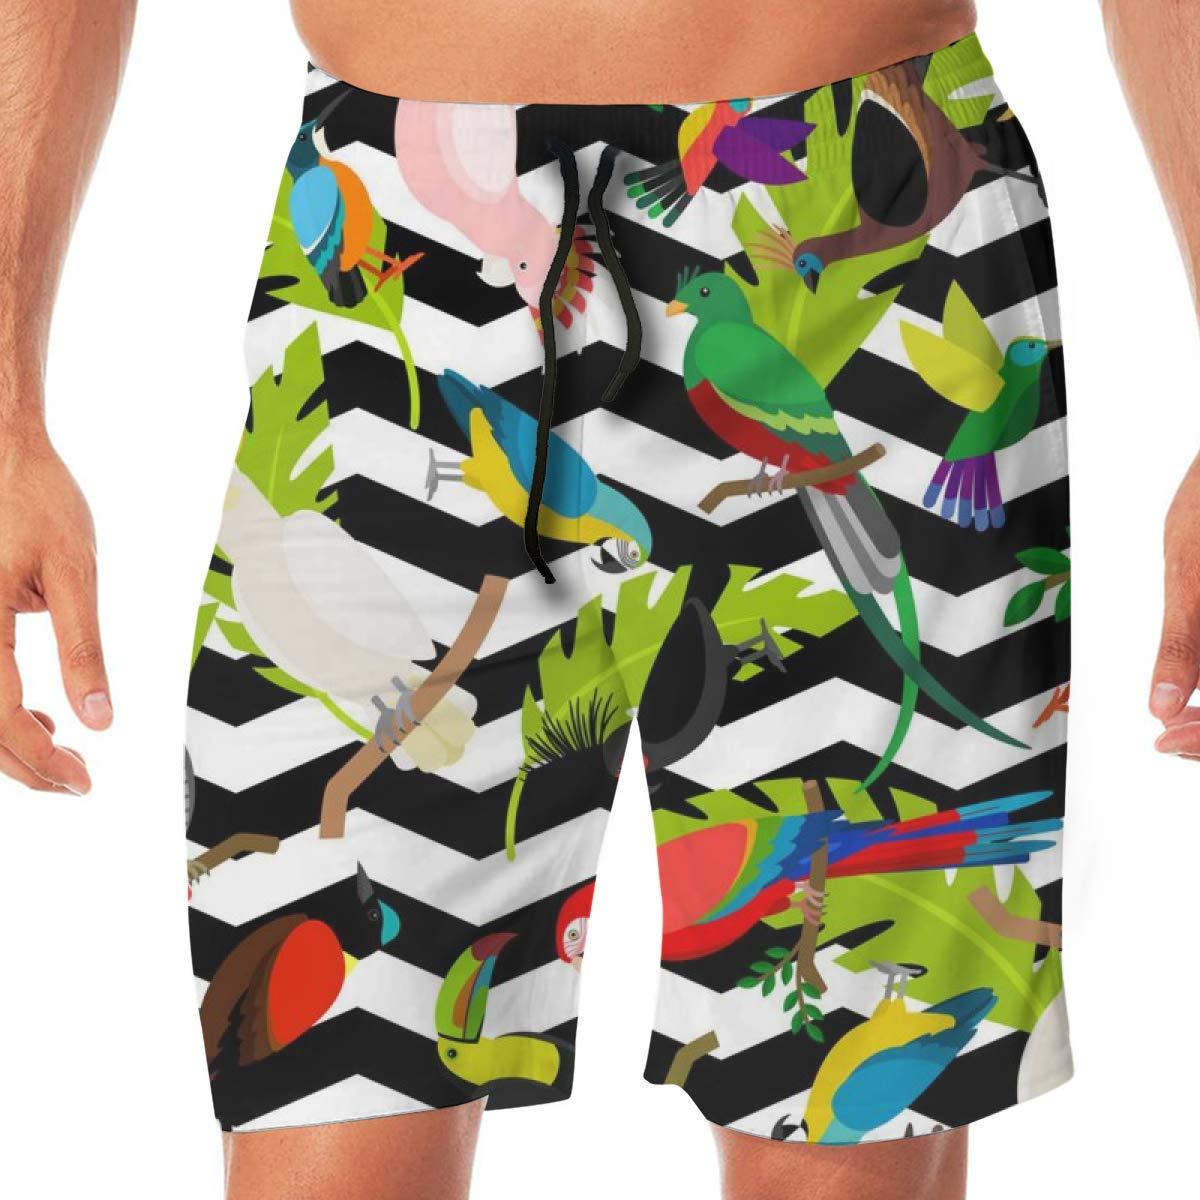 TR2YU7YT Fashion Parrots Casual Mens Swim Trunks Quick Dry Printed Beach Shorts Summer Boardshorts Bathing Suits with Drawstring